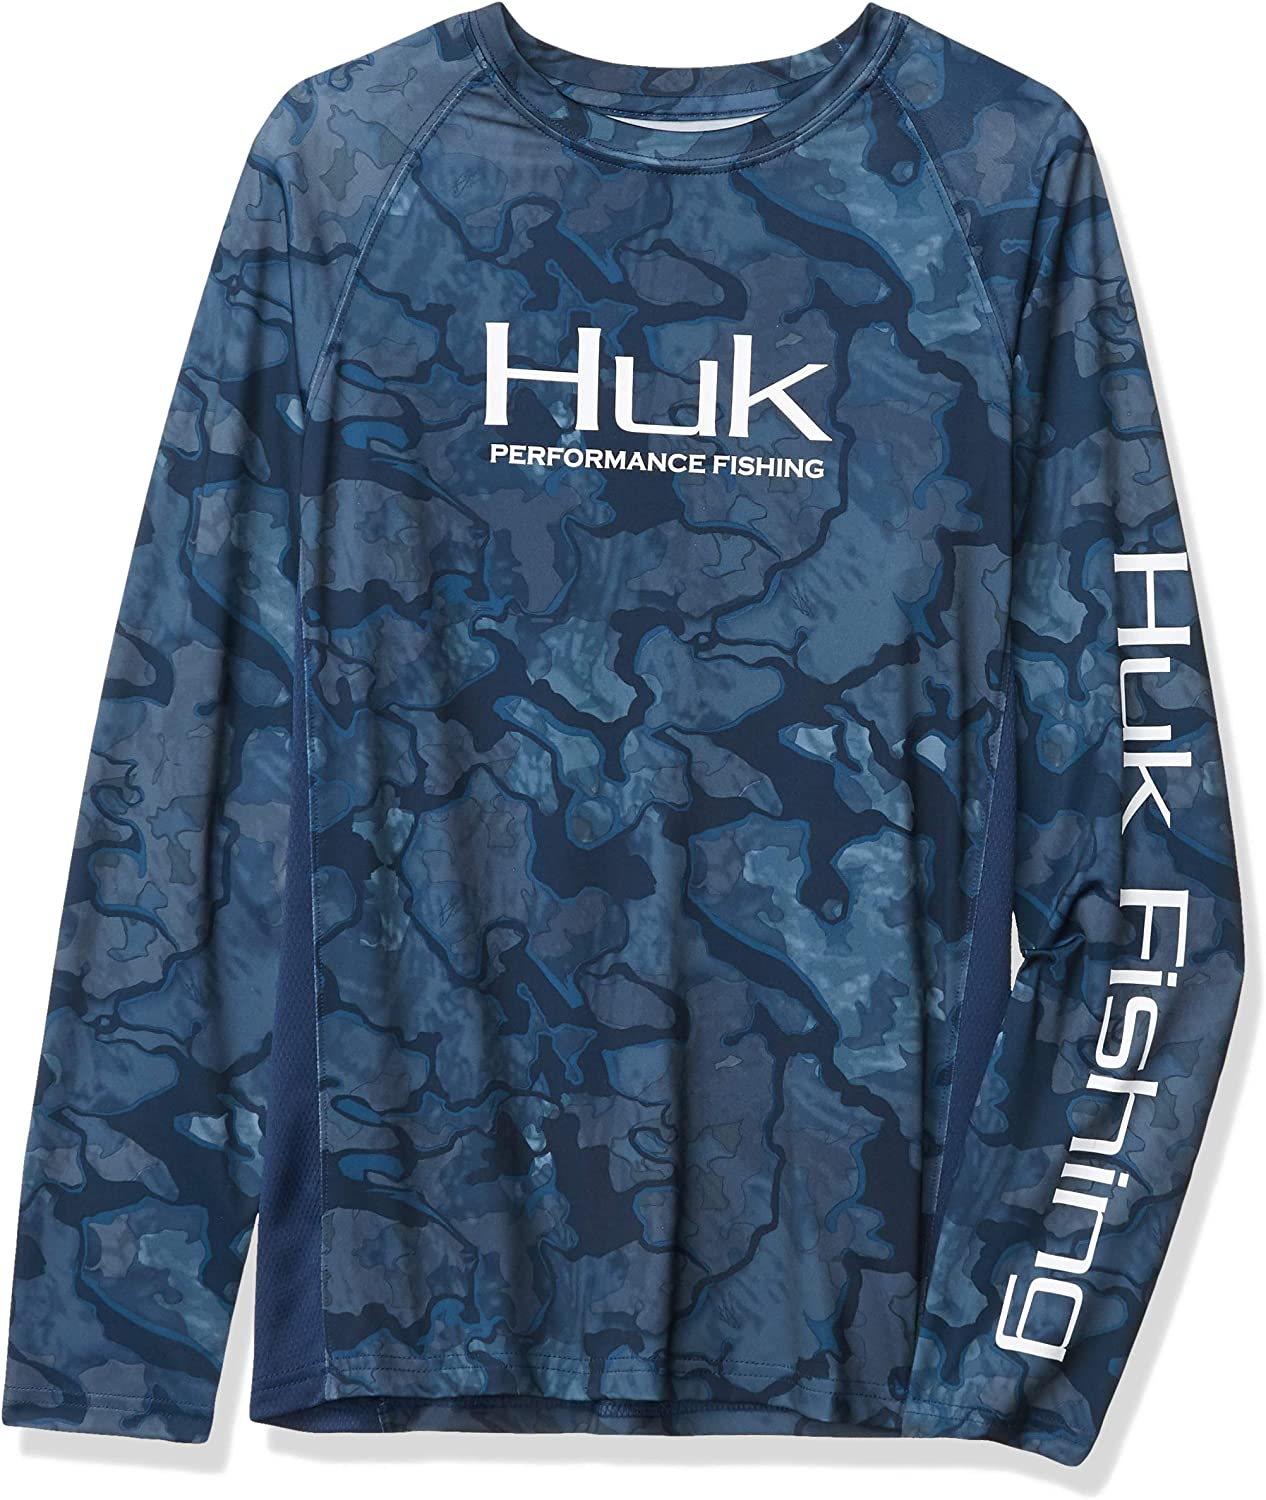 HUK Unisex-Child Pursuit Camo Vented 30 UPF Sun Protection Kids Long Sleeve Performance Fishing Shirt with